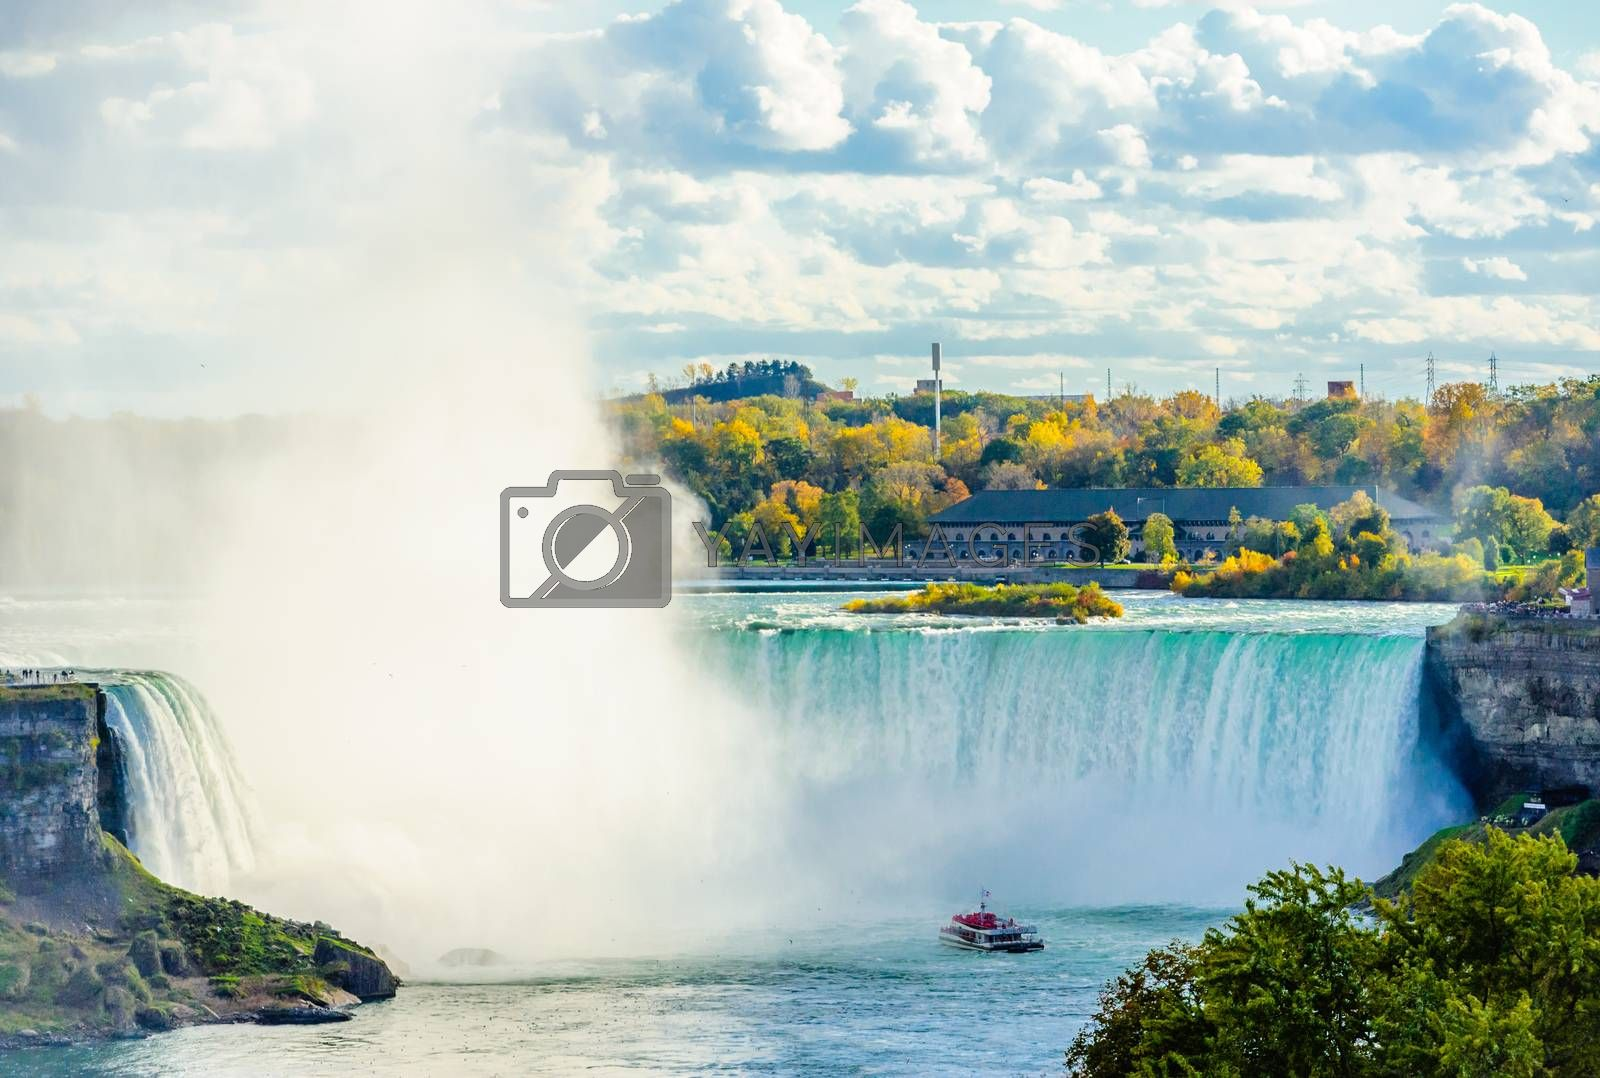 NIAGARA FALLS, CANADA - OCTOBER 26, 2017: A tour boat gets close to the Horseshoe Falls surrounded by colorful autumn trees.